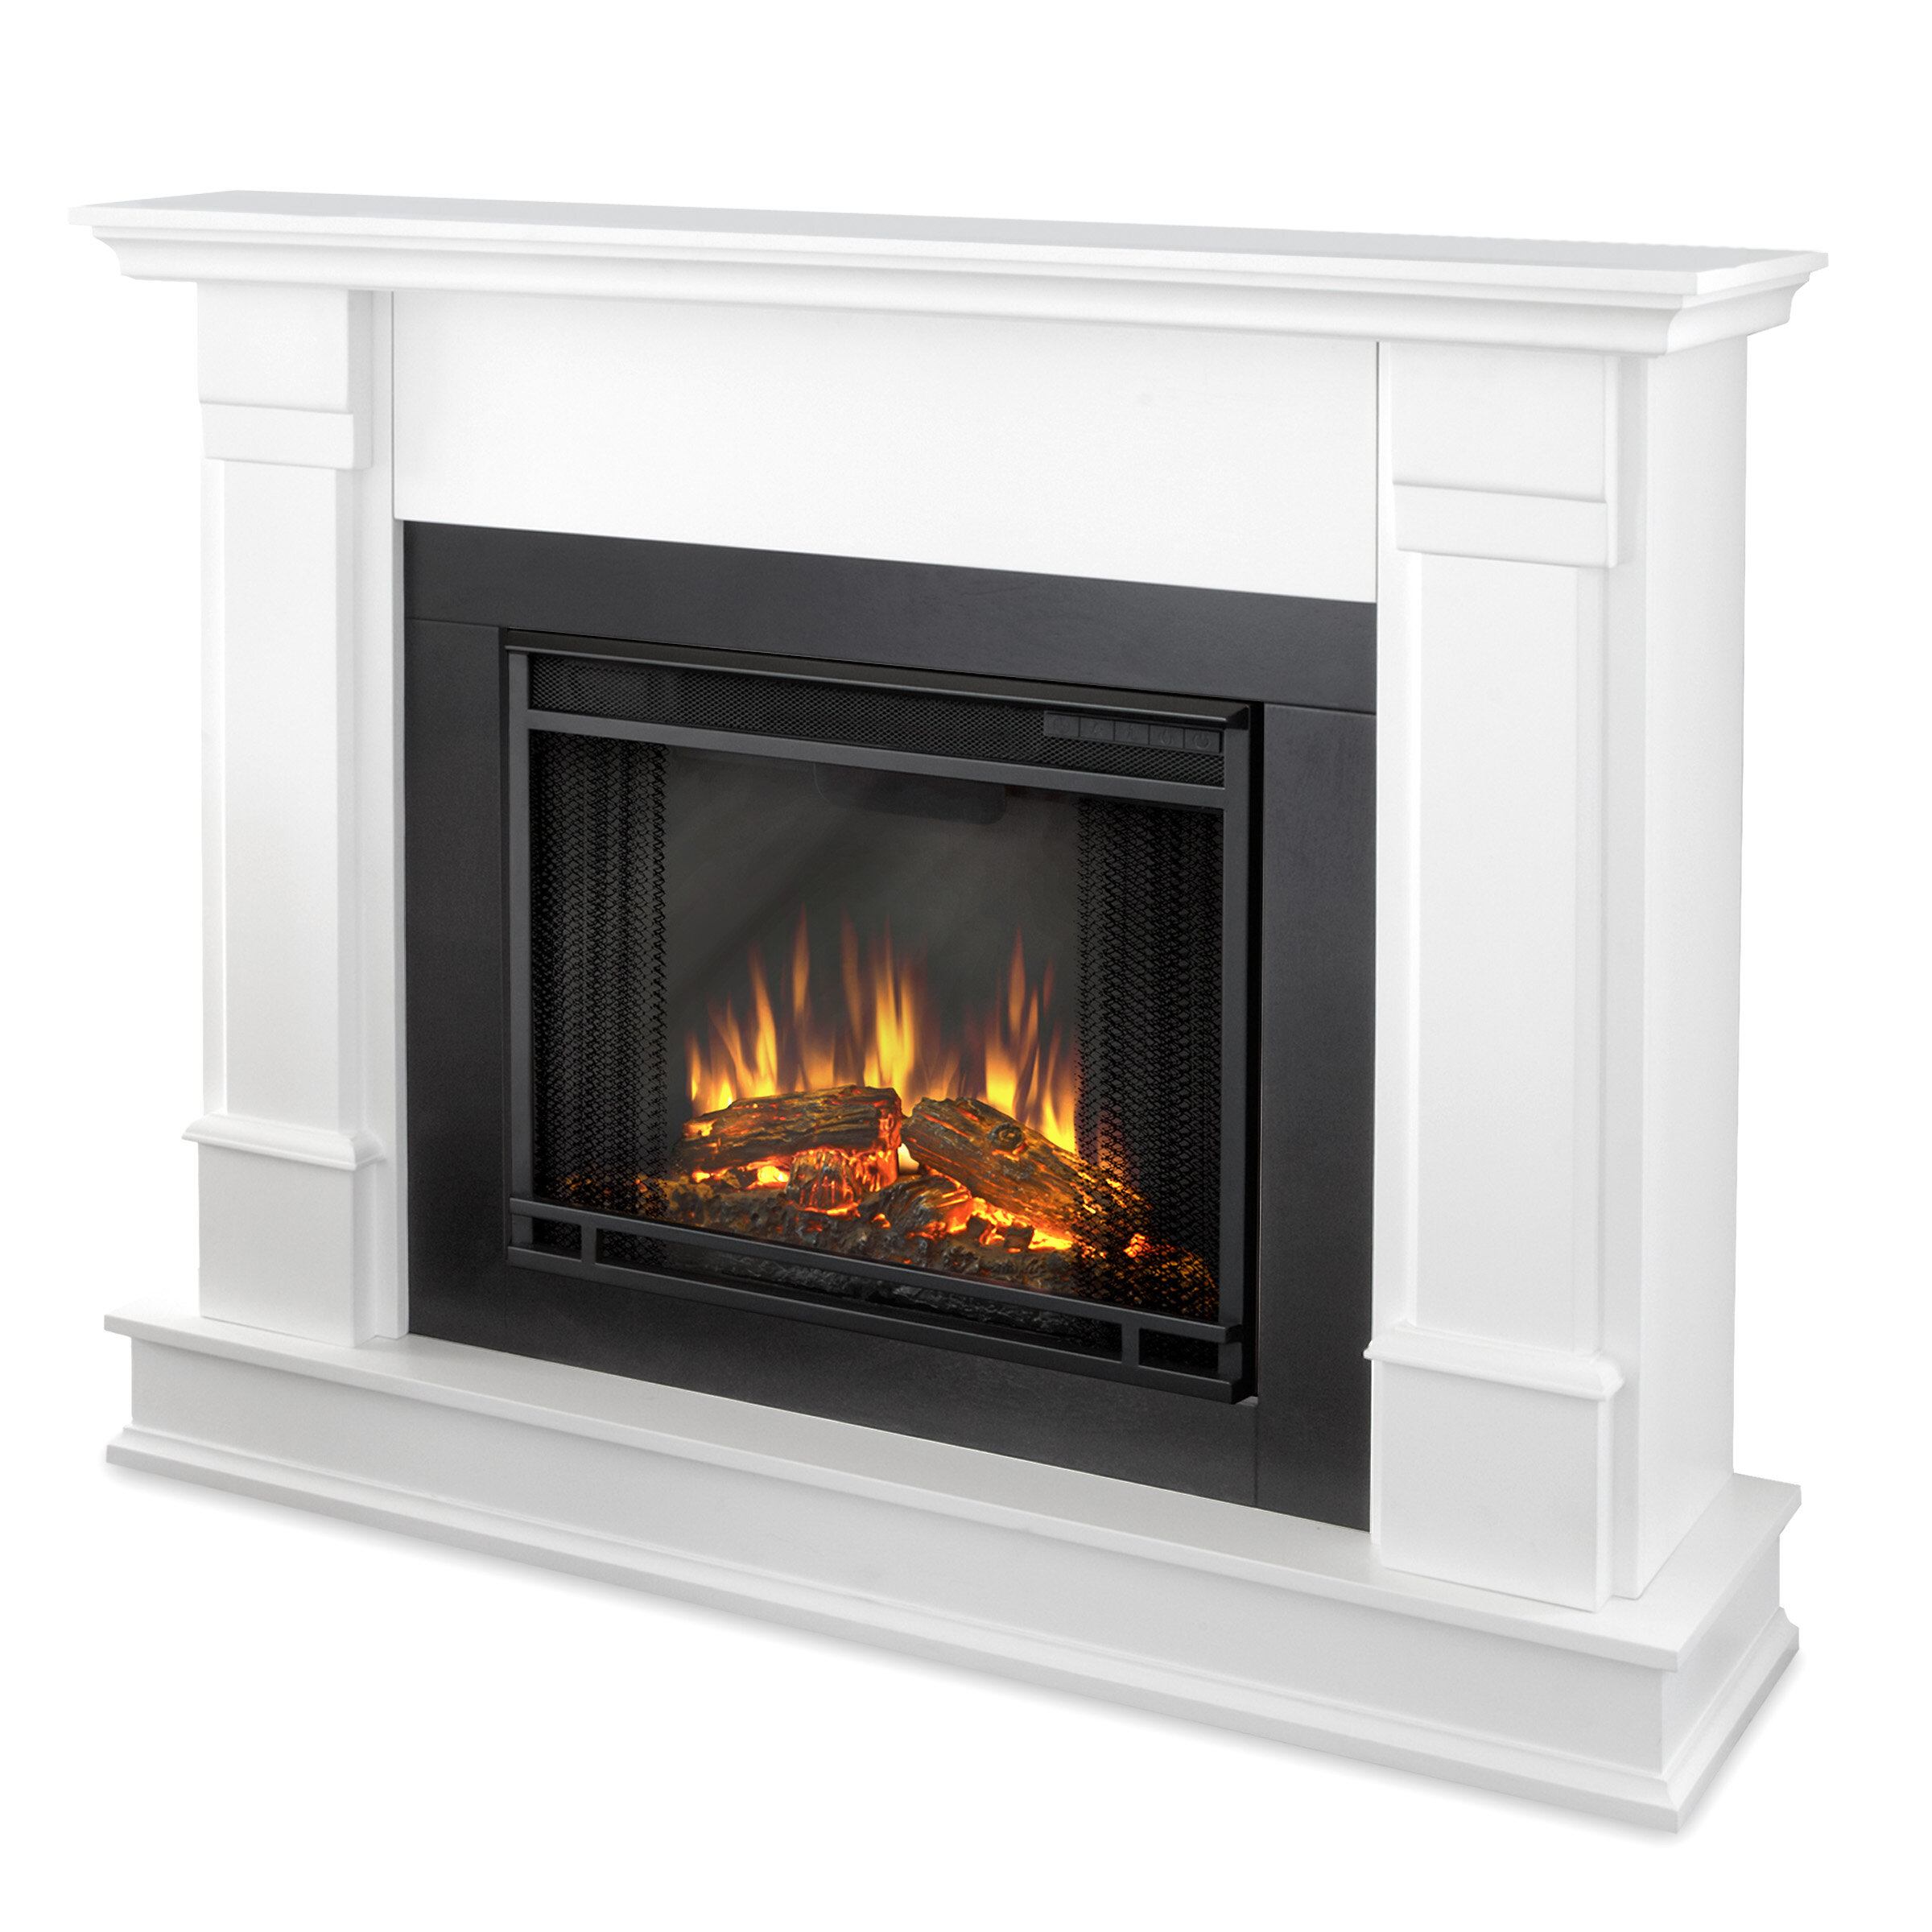 fireplaces insert vented fireplace lowes realistic recessed heaters inserts for full gas custom most in portable fire hanging built linear wall image heater electric s kerosene doors